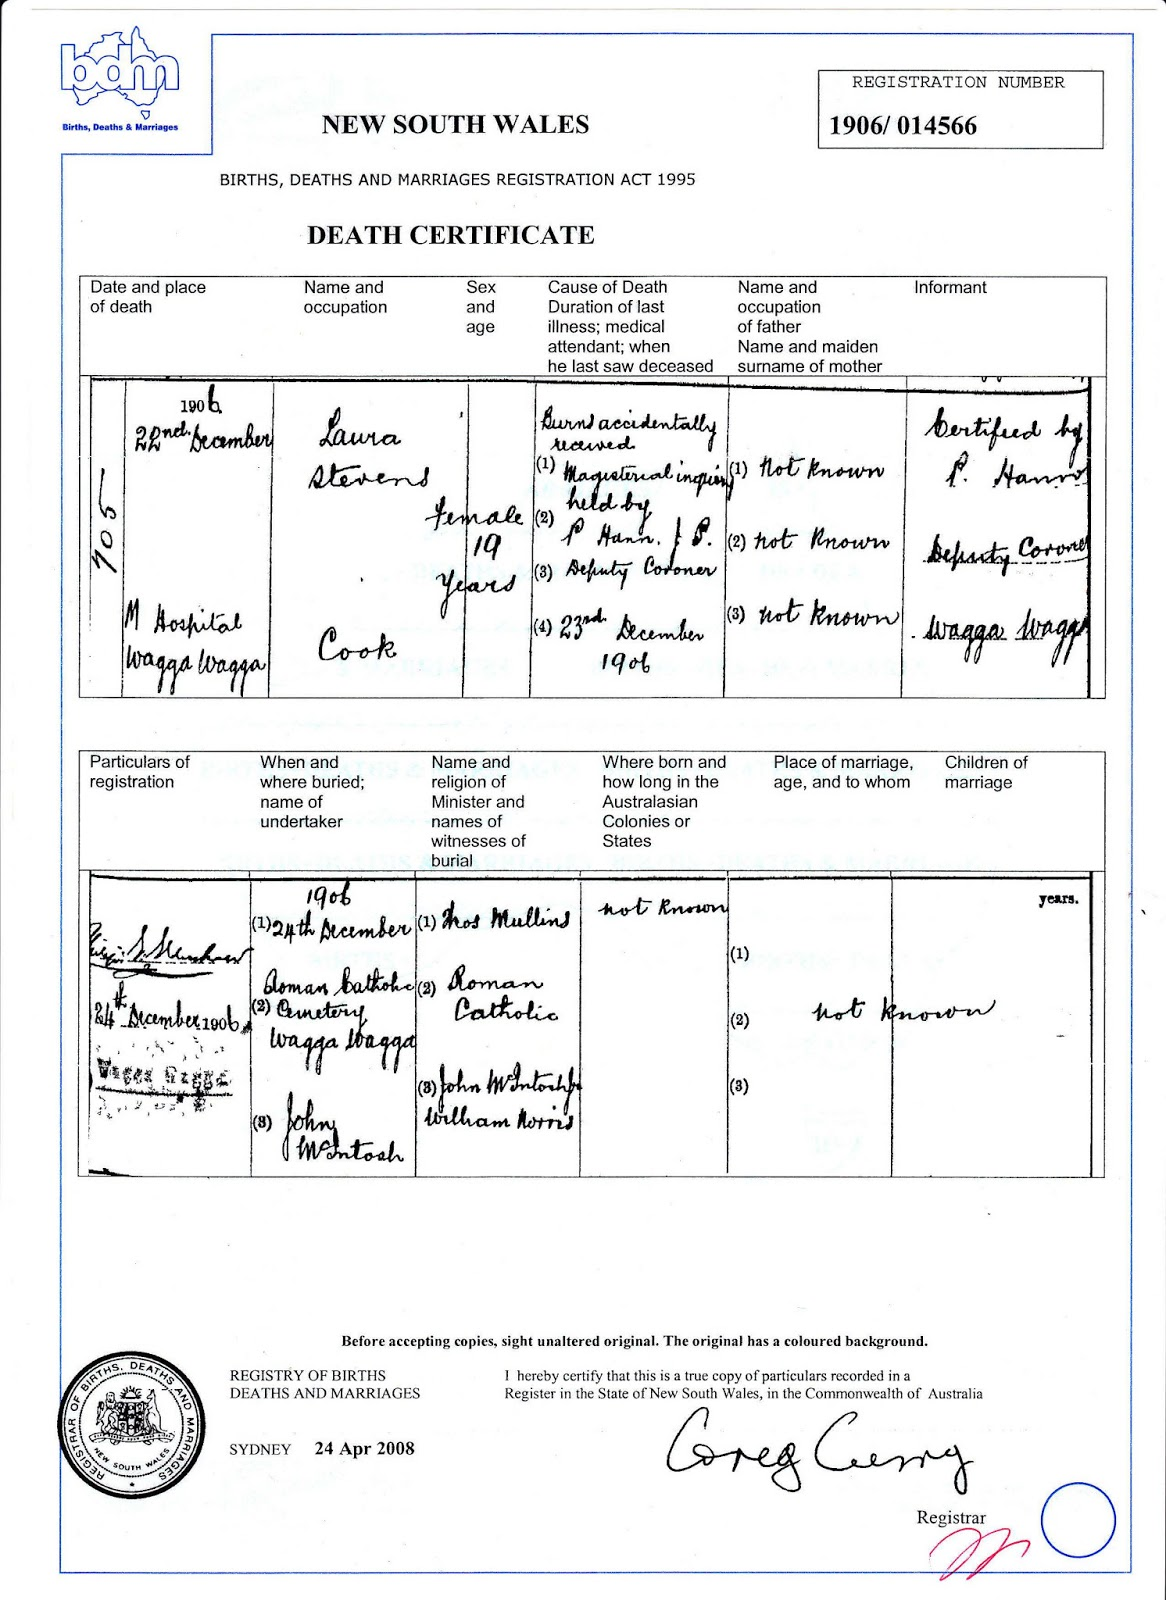 Australia death certificate sample choice image certificate australian roots and spreading branches may 2013 nsw bdm death certificate for laura stevens yadclub choice aiddatafo Image collections